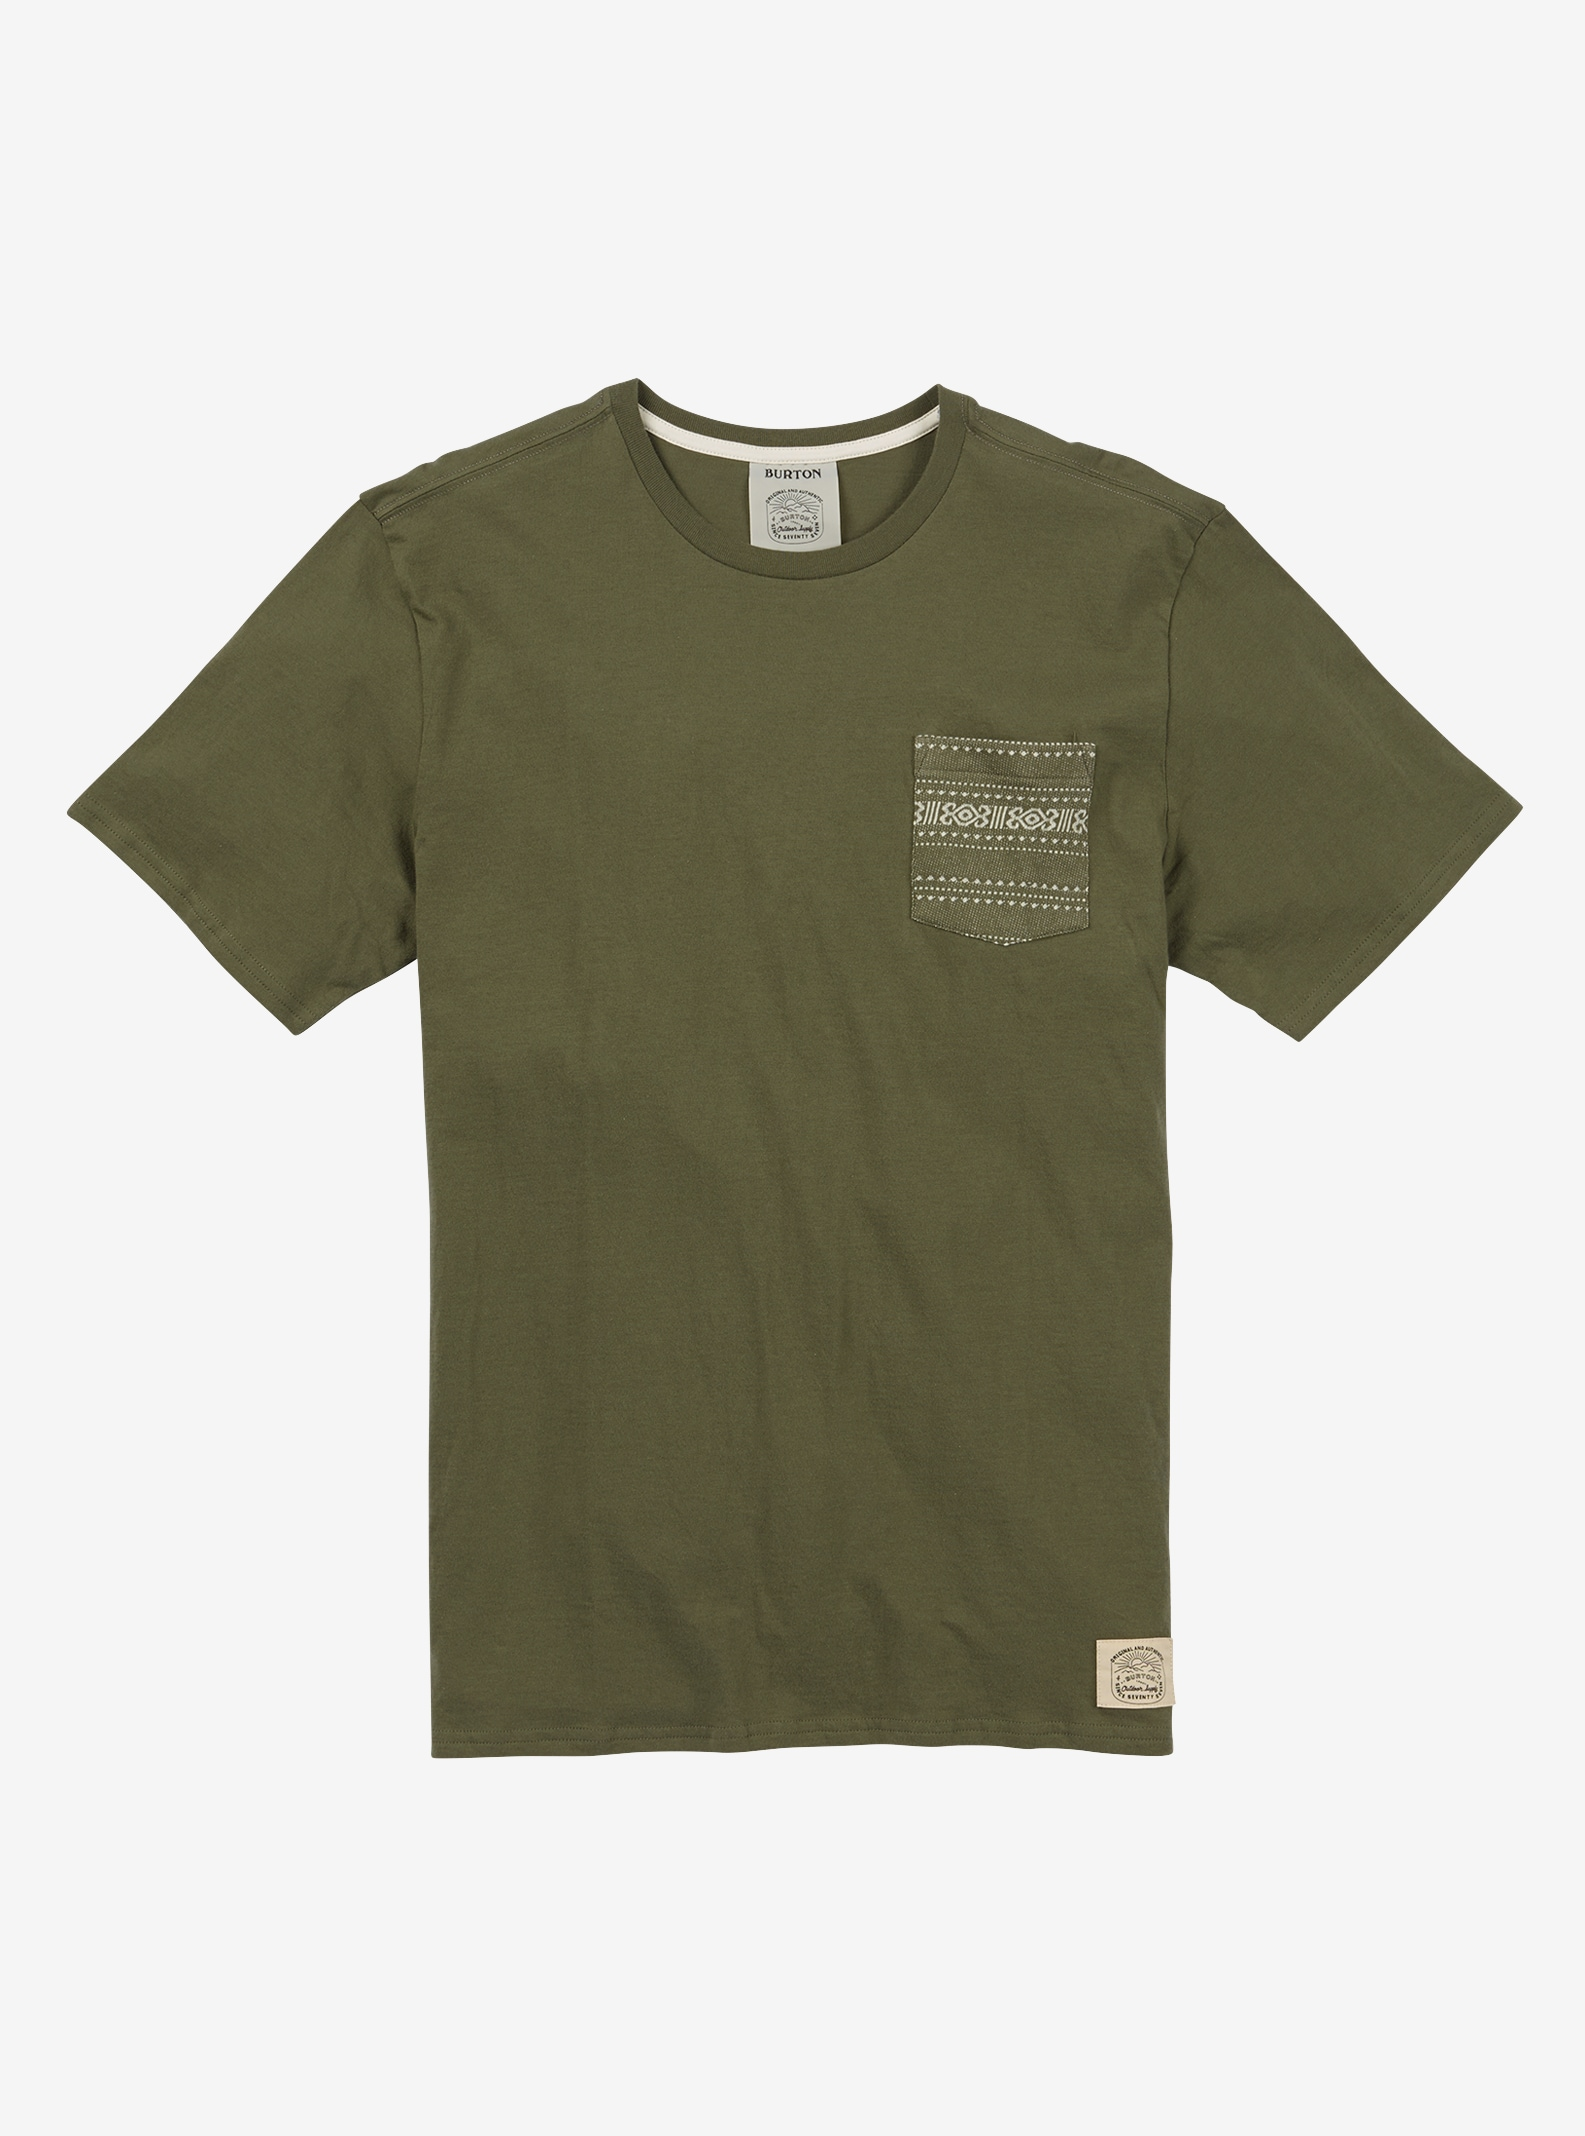 Men's Burton Reed Short Sleeve T Shirt shown in Dusty Olive